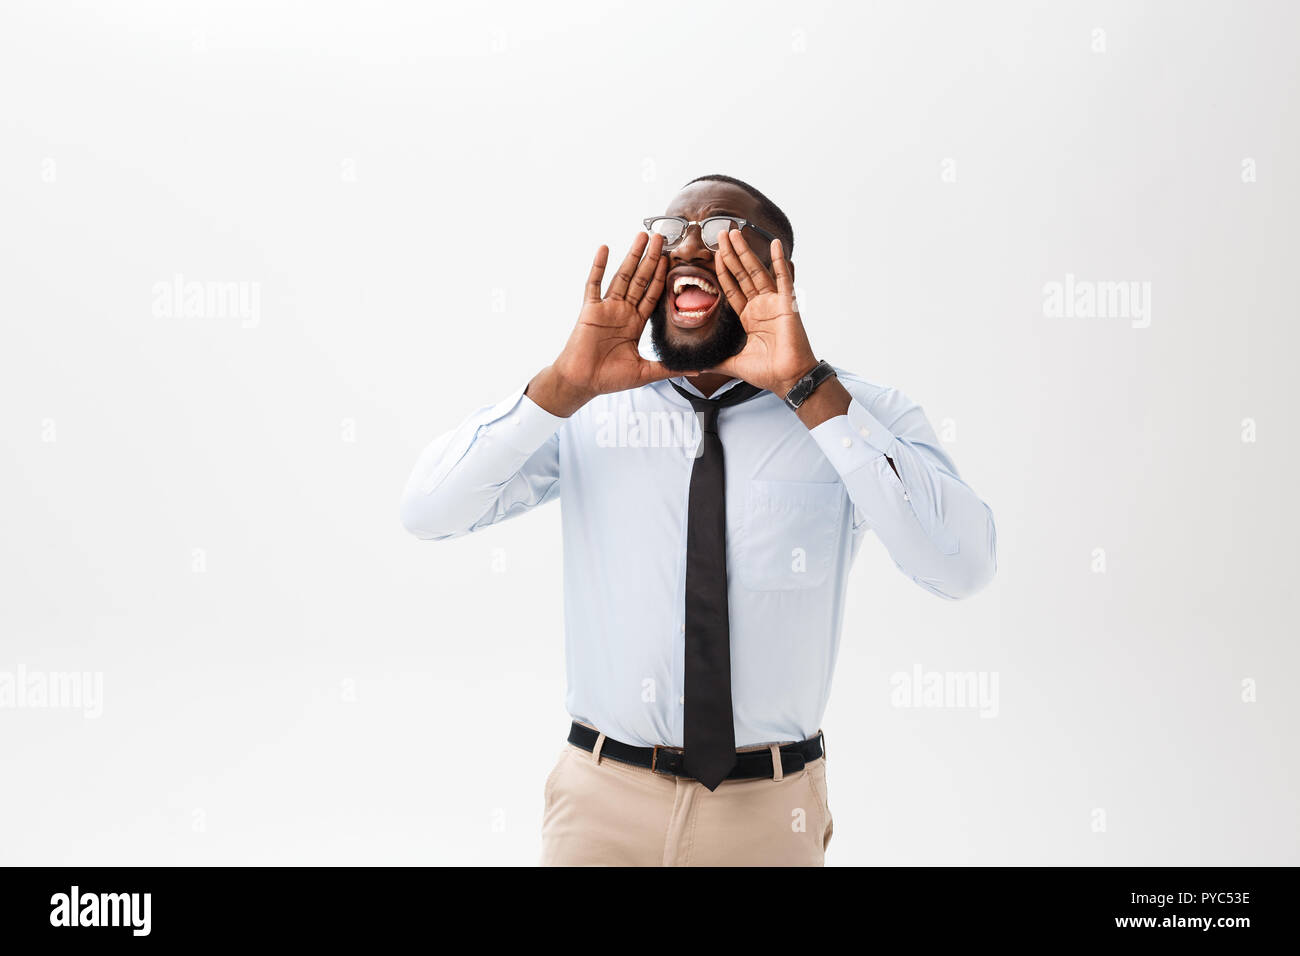 African man yelling with hand on his mouth isolated on a white background. - Stock Image